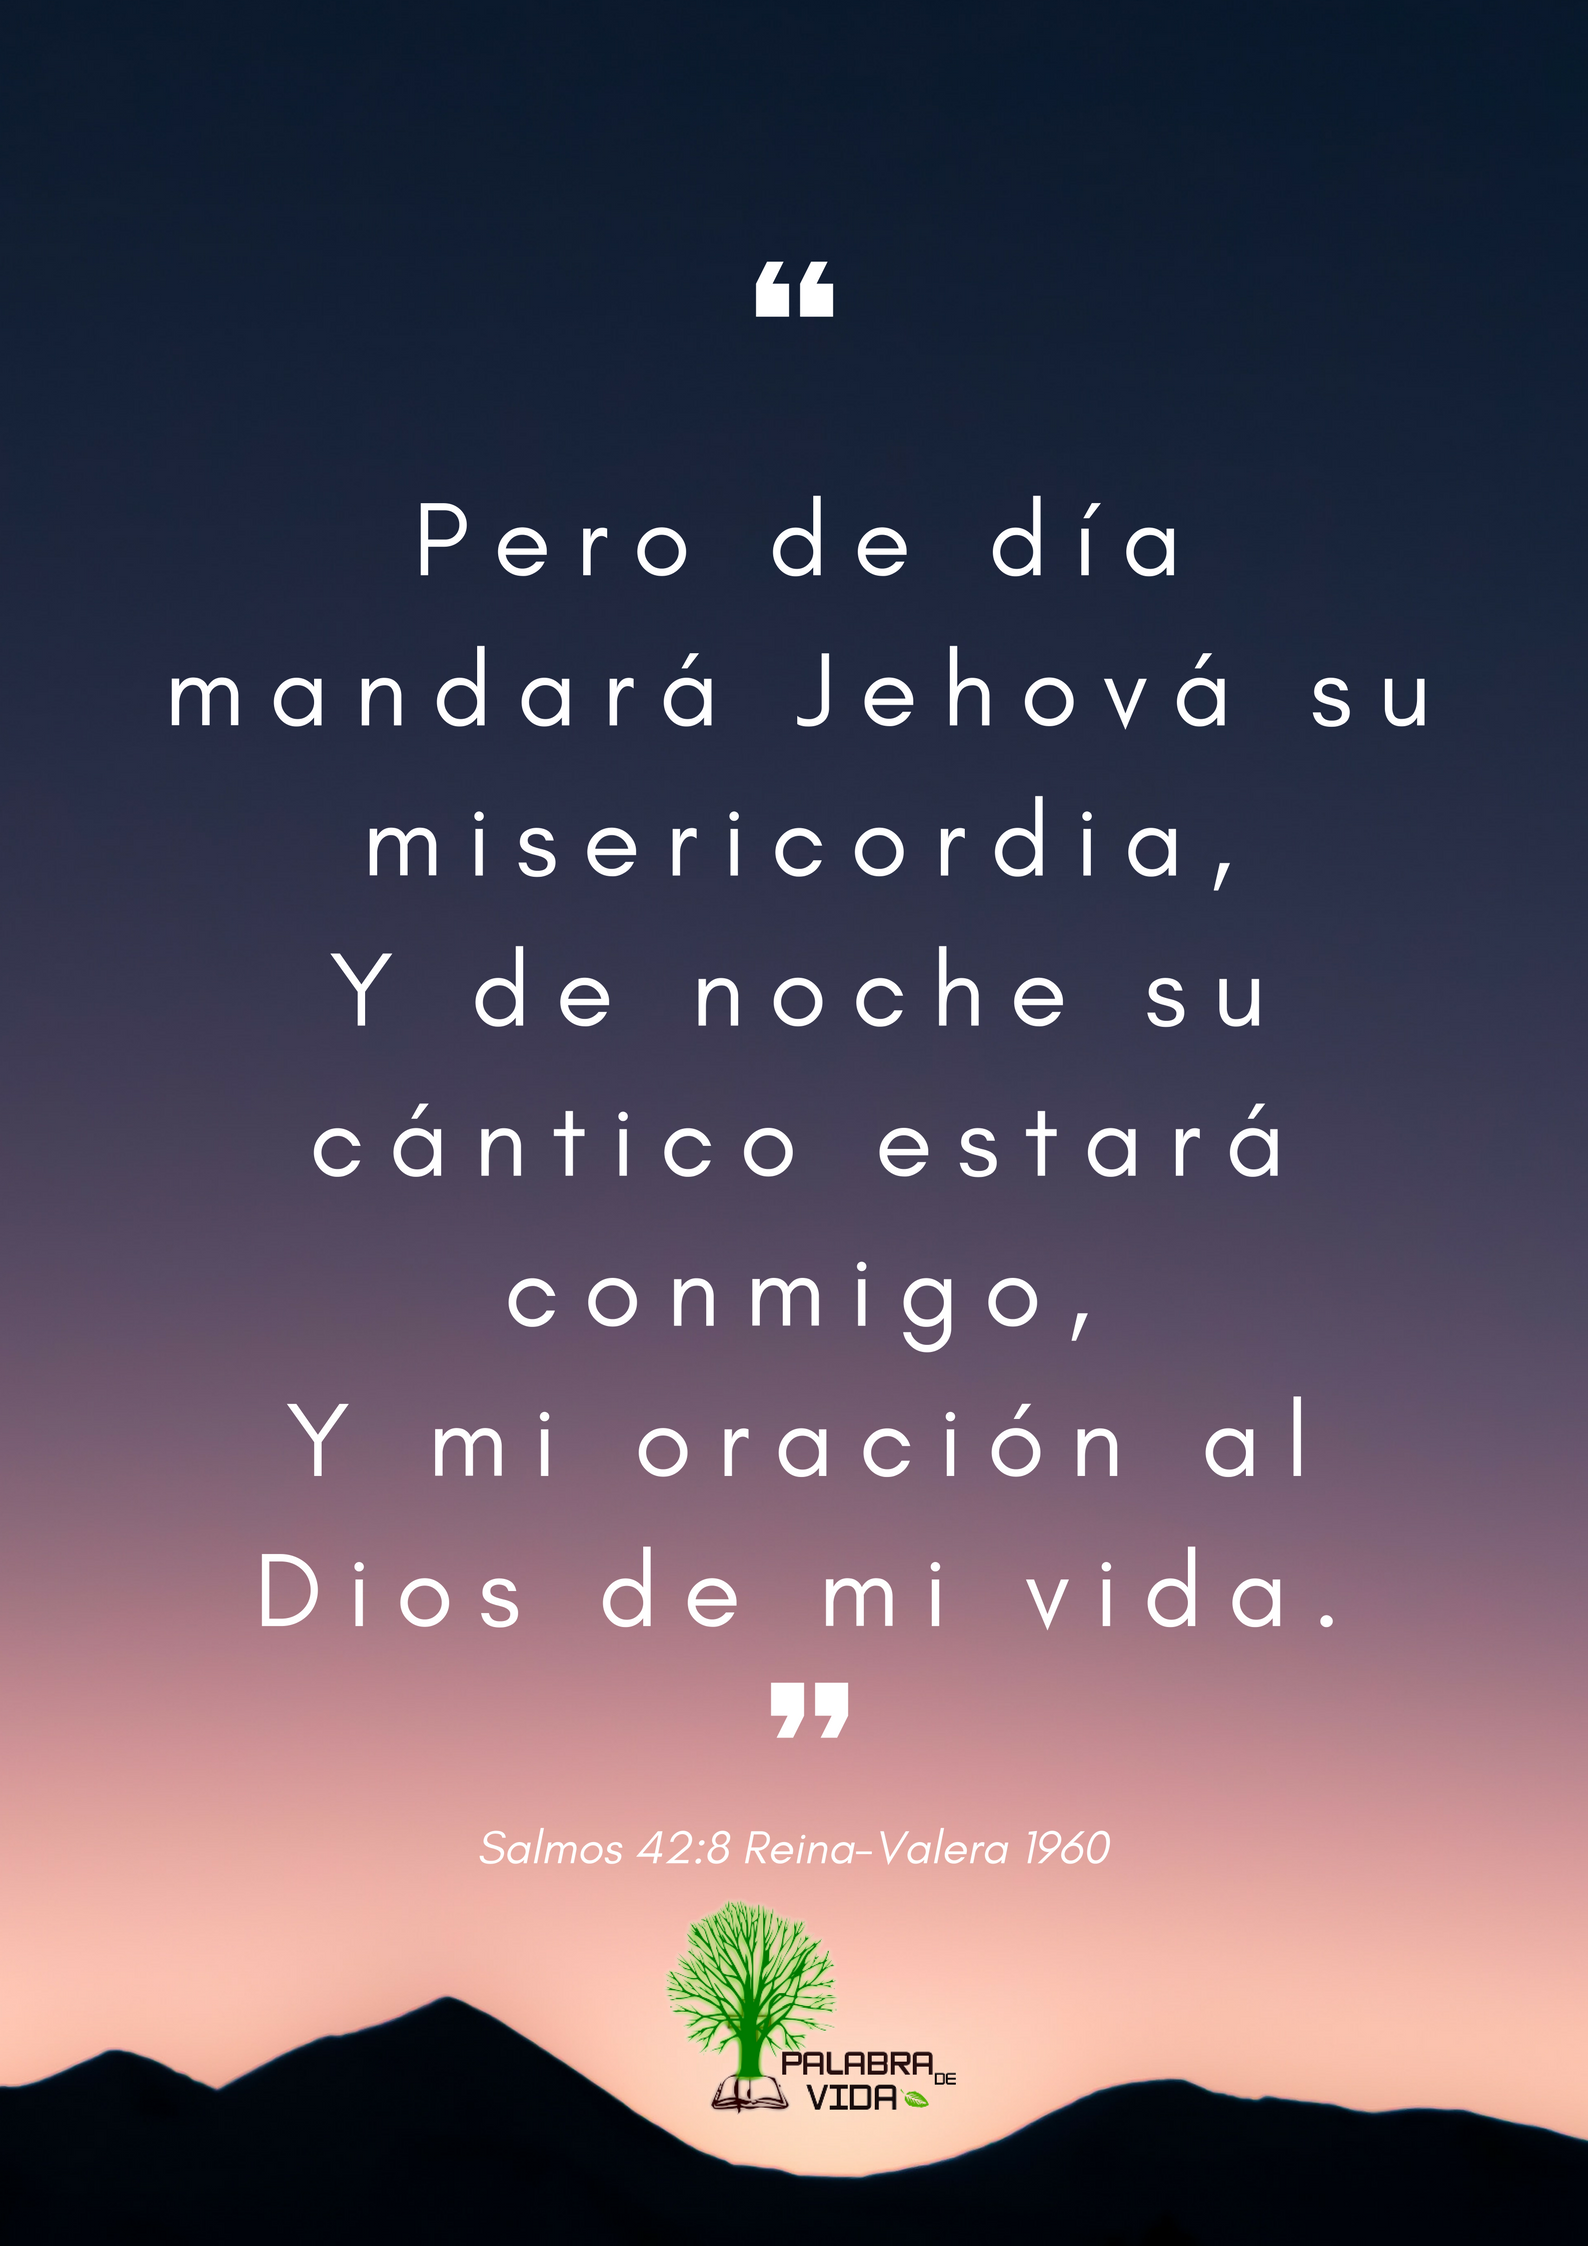 Frases Dios, Frases